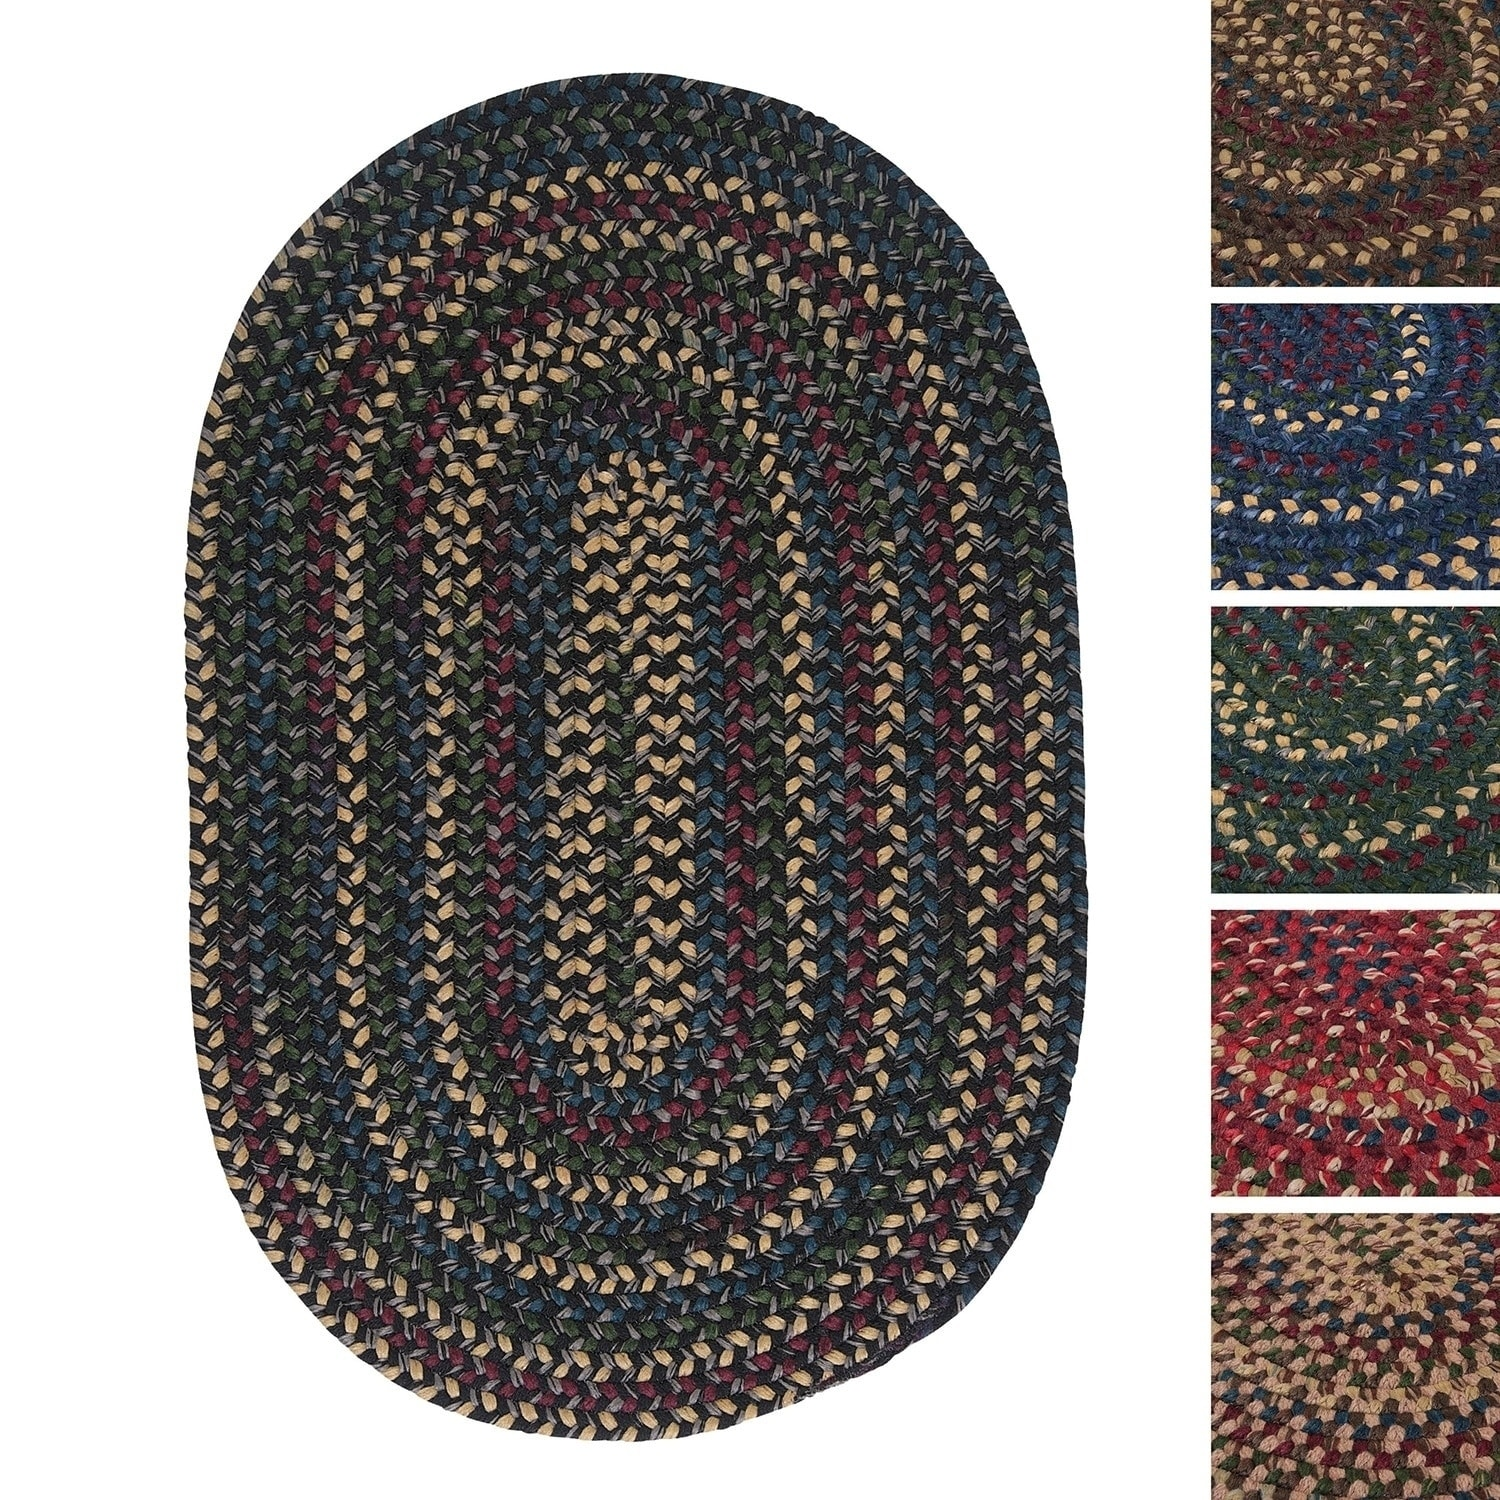 Pine Canopy Coconino Multicolored Reversible Oval Braided Rug (5' x 8')